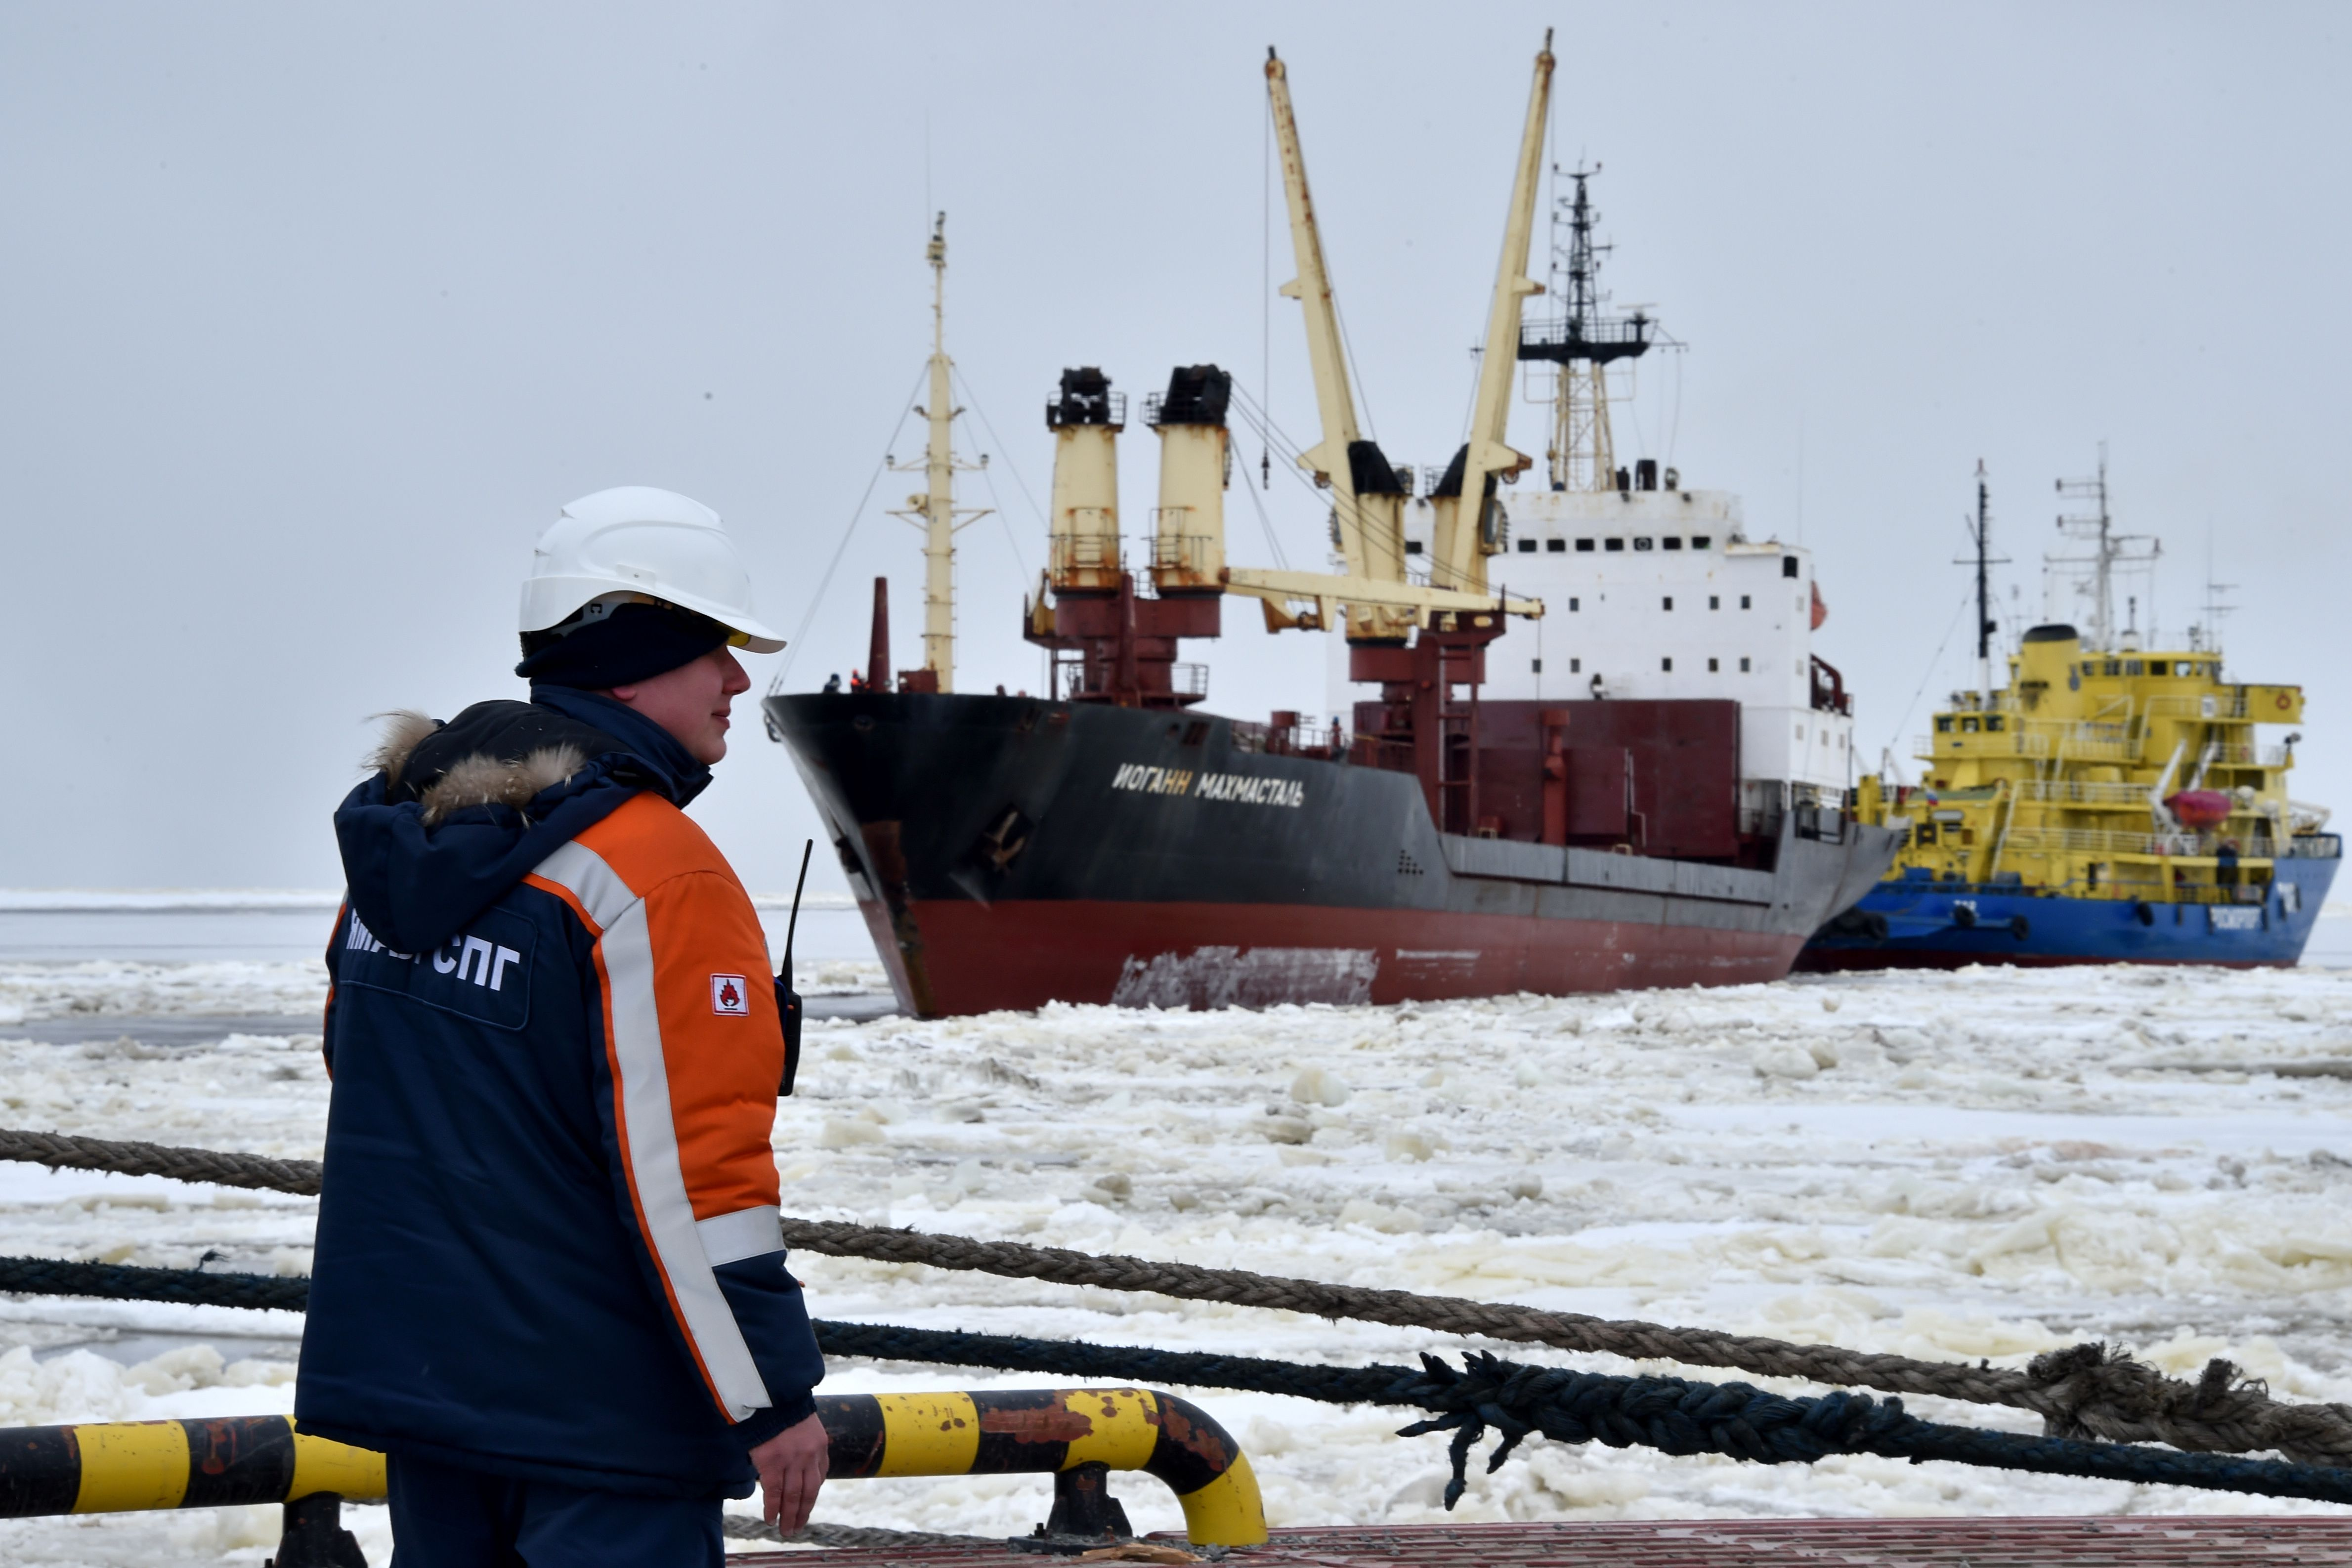 A cargo ship at the port of Sabetta in the Arctic circle.